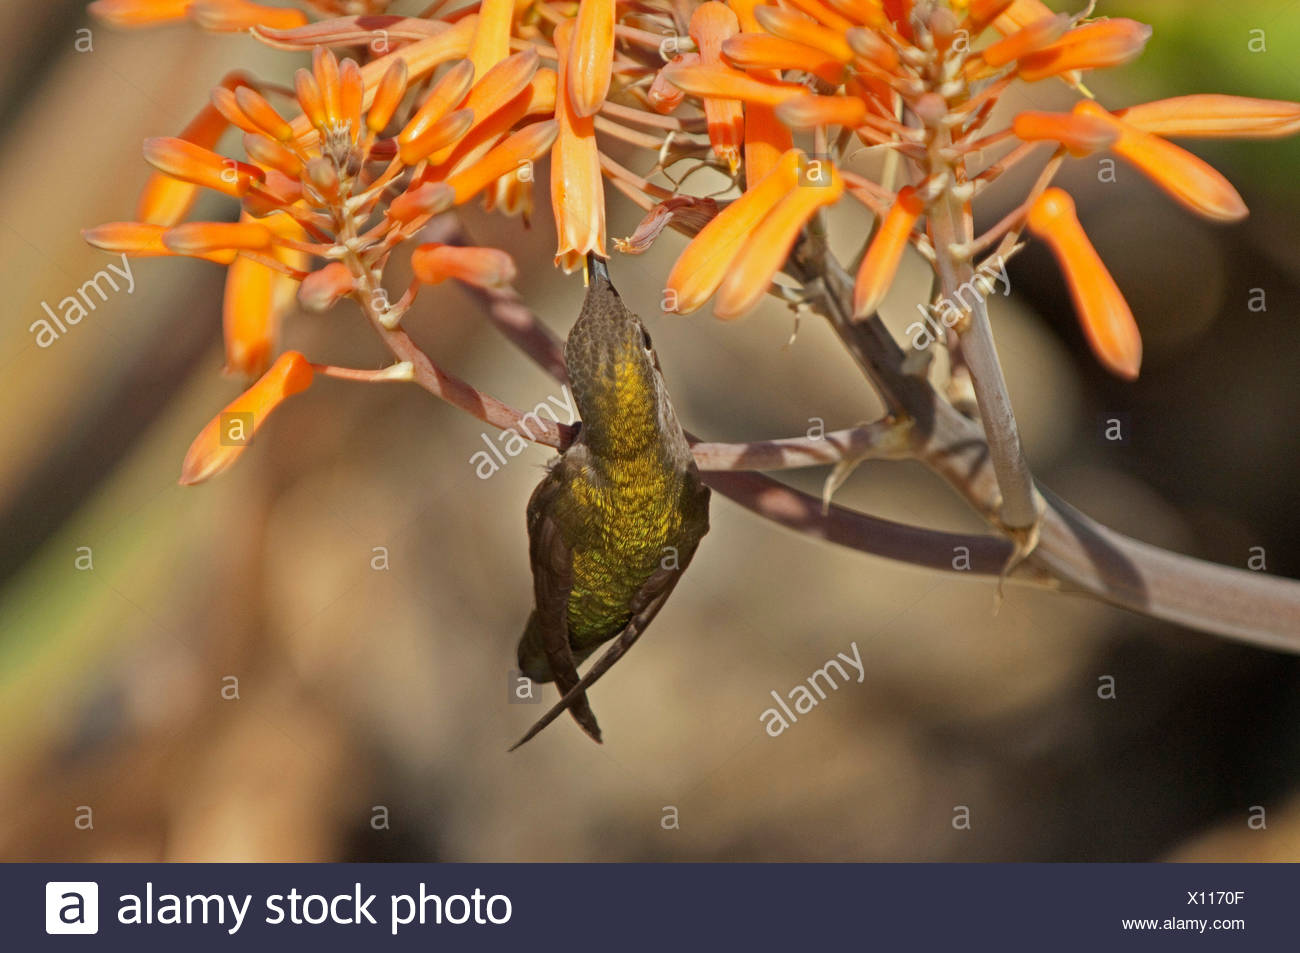 hummingbird feeding on the nectar of a flower, USA, California - Stock Image